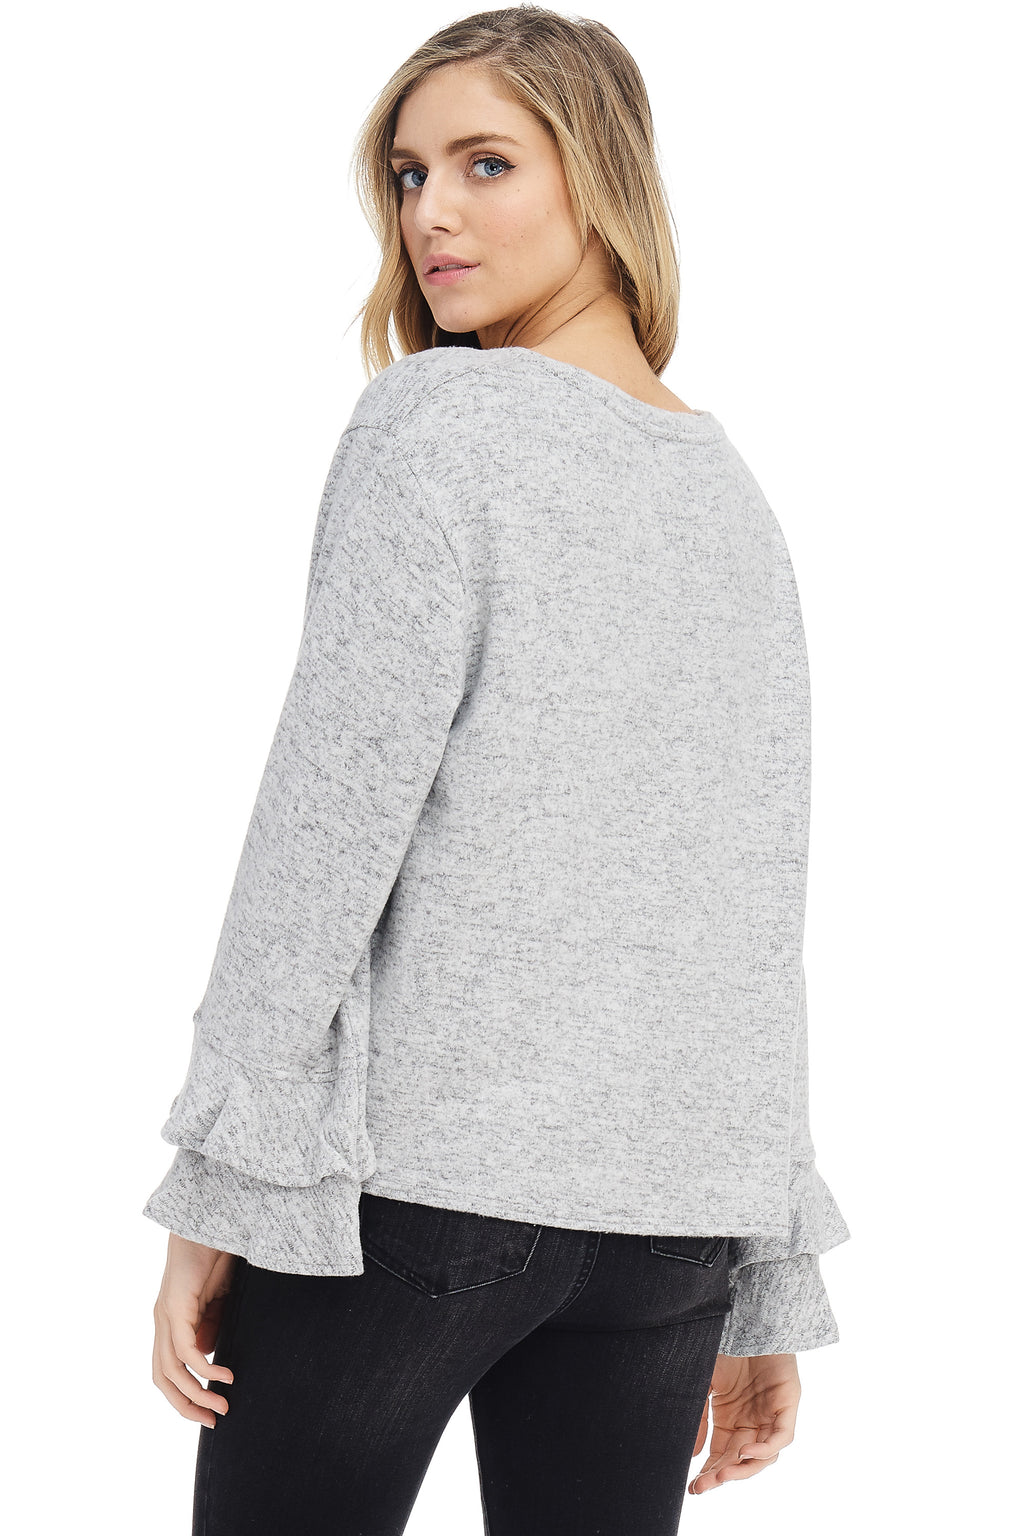 *Pre-Order* W18-267 Speckled Sweater